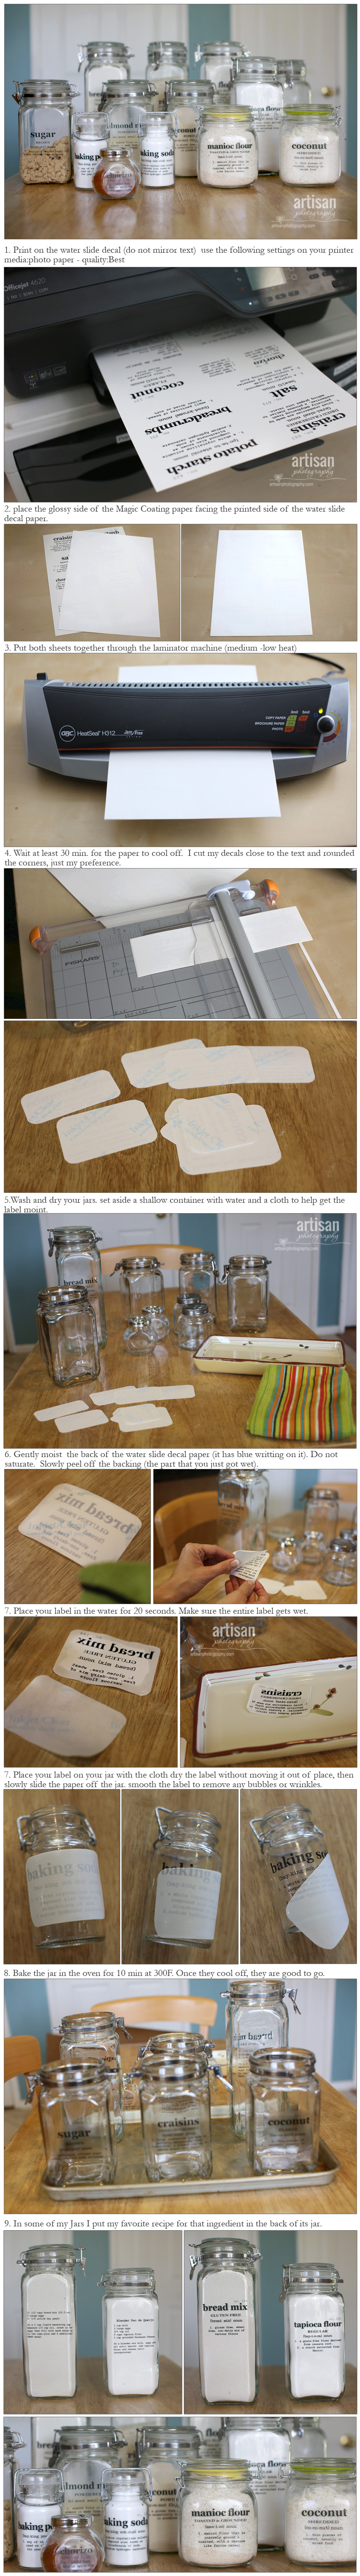 Instructions on how to make labels for glass jars using magic coating water slide paper.